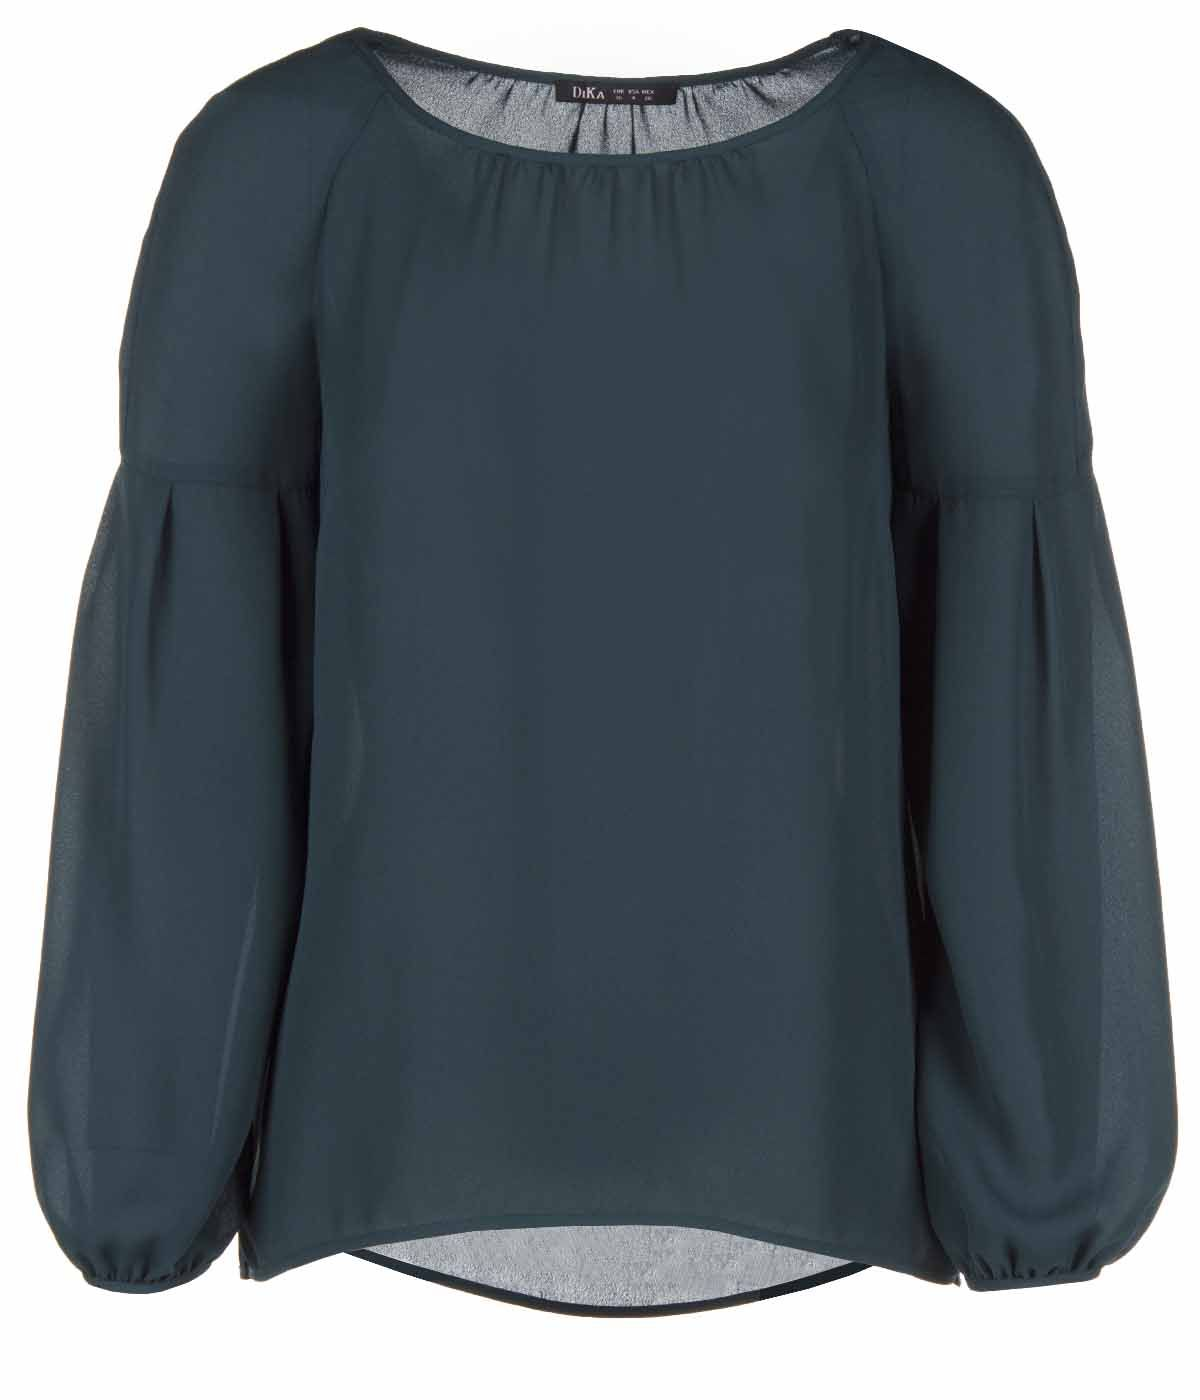 GREEN LONG SLEEVED BLOUSE WITH ROUND NECK 0